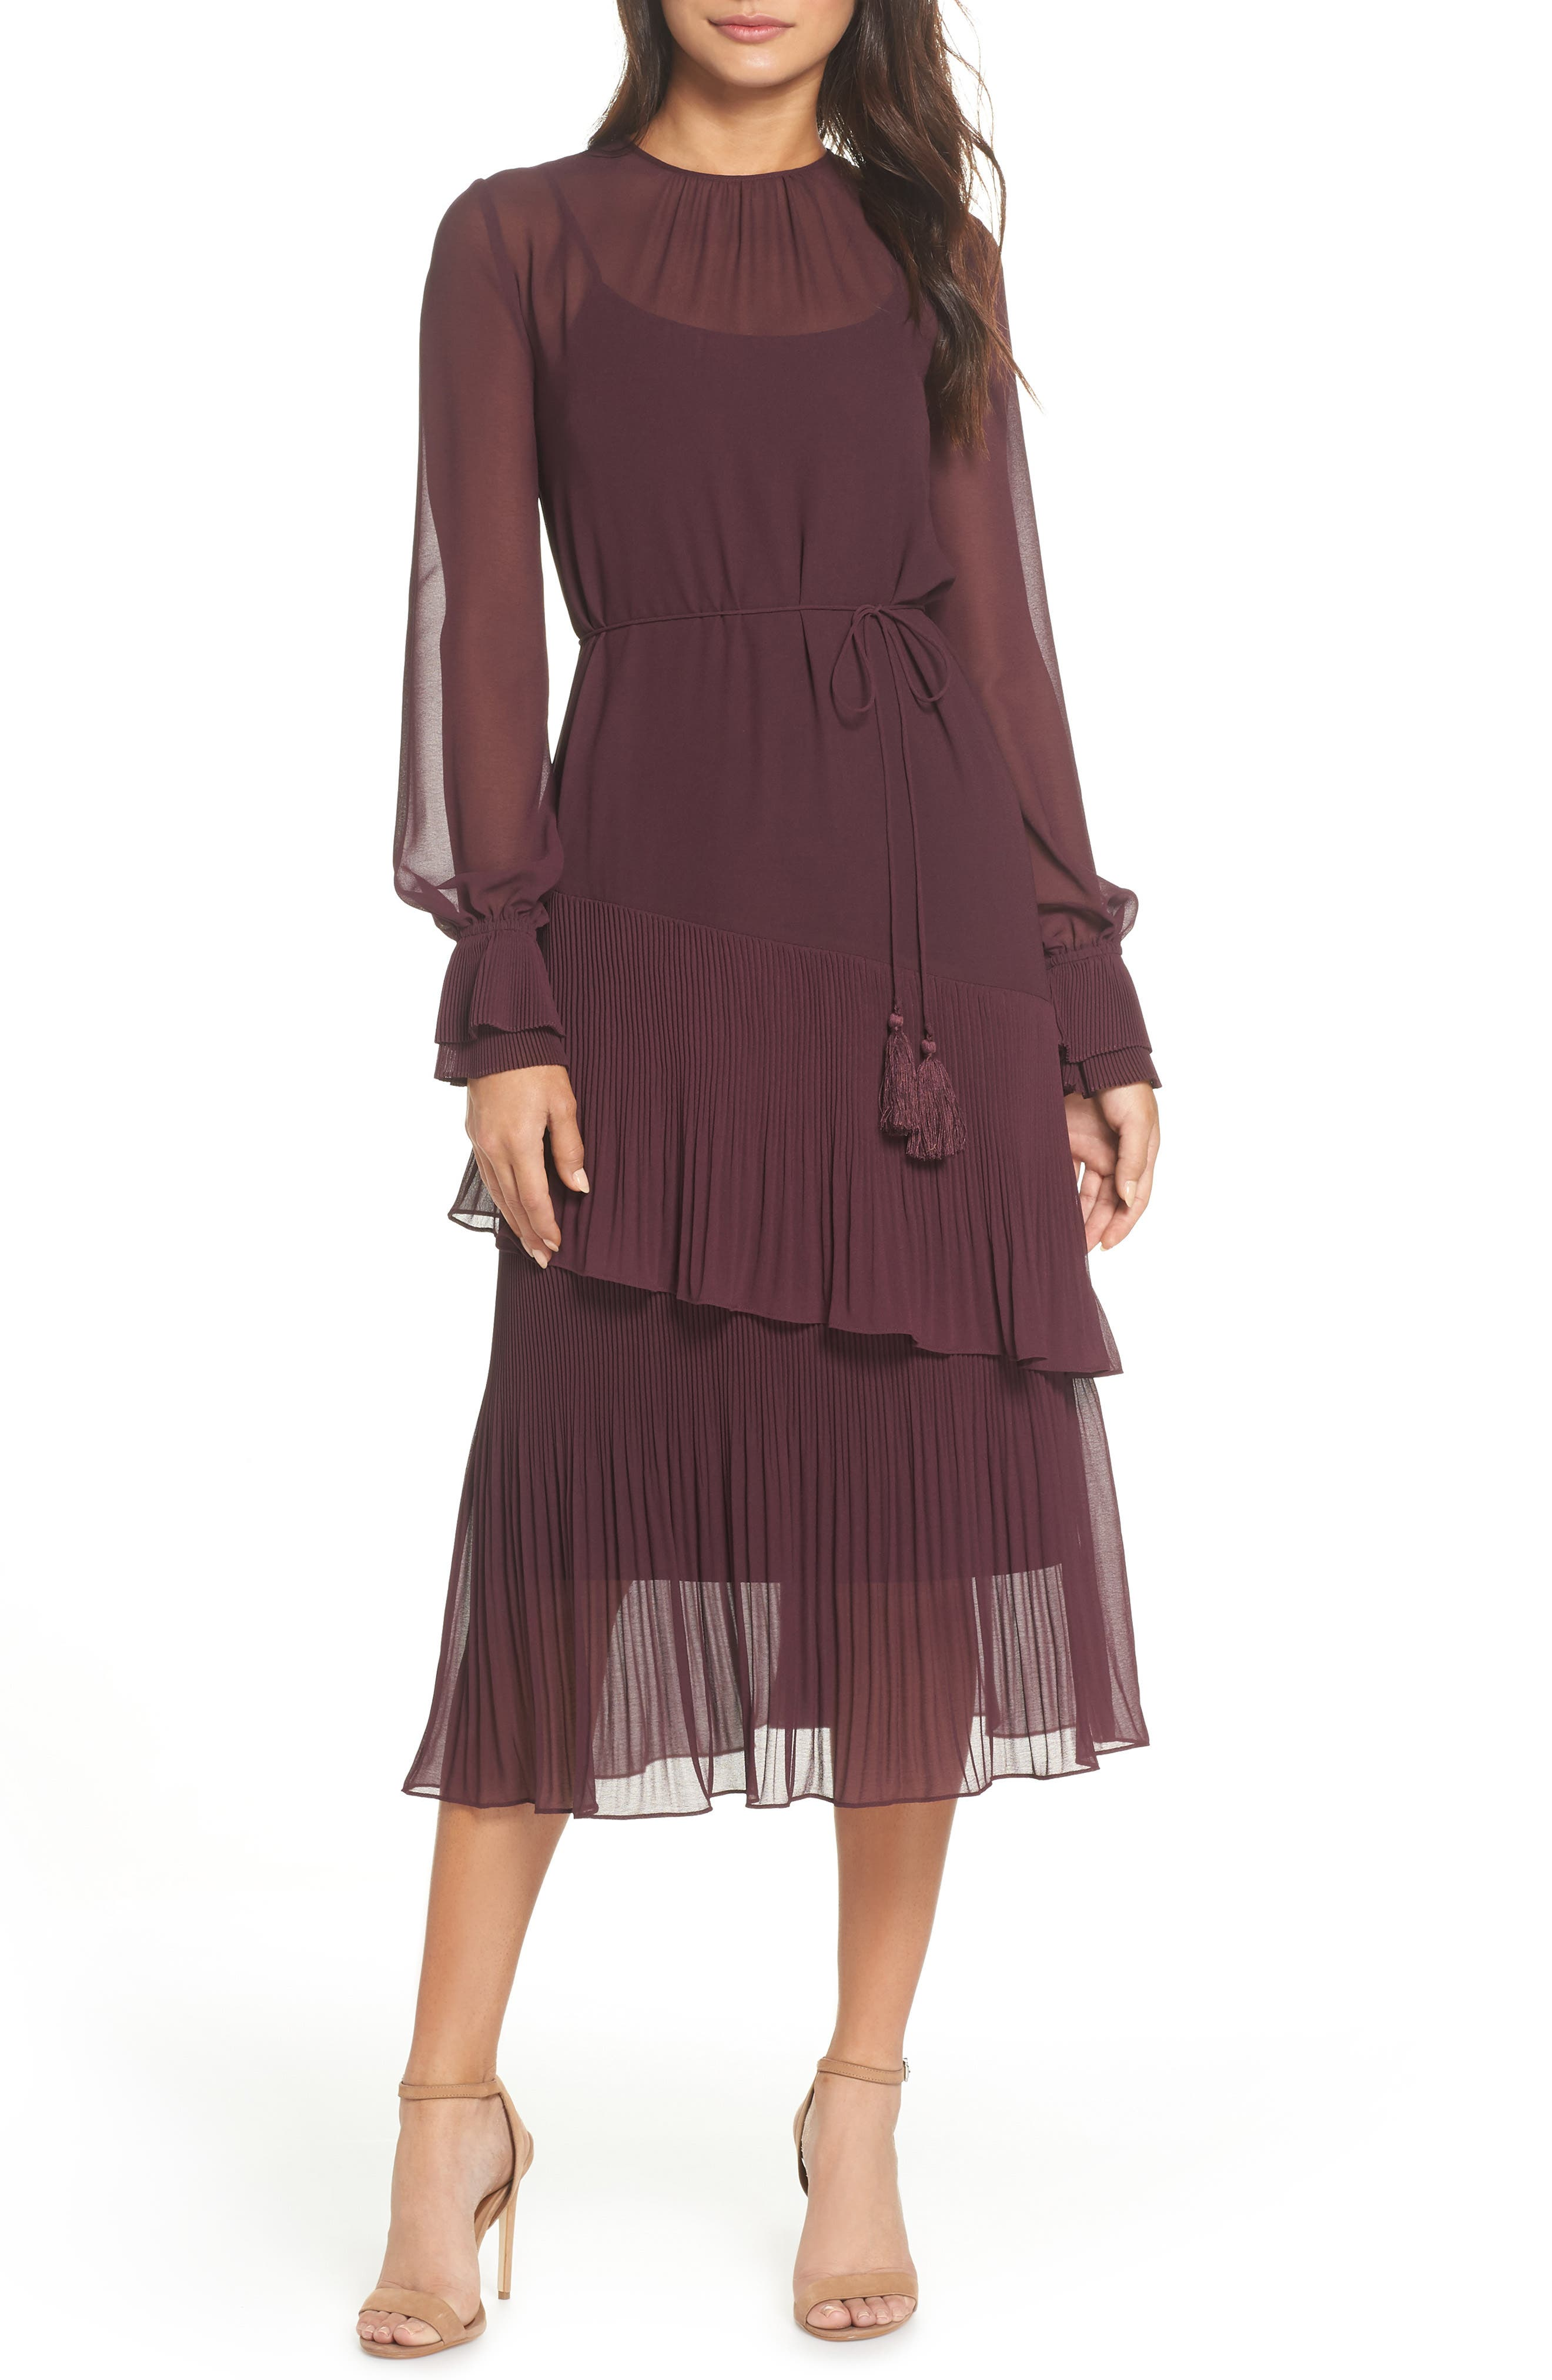 1920s Evening Dresses & Formal Gowns Womens Chelsea28 Pleat Detail Midi Dress $149.00 AT vintagedancer.com